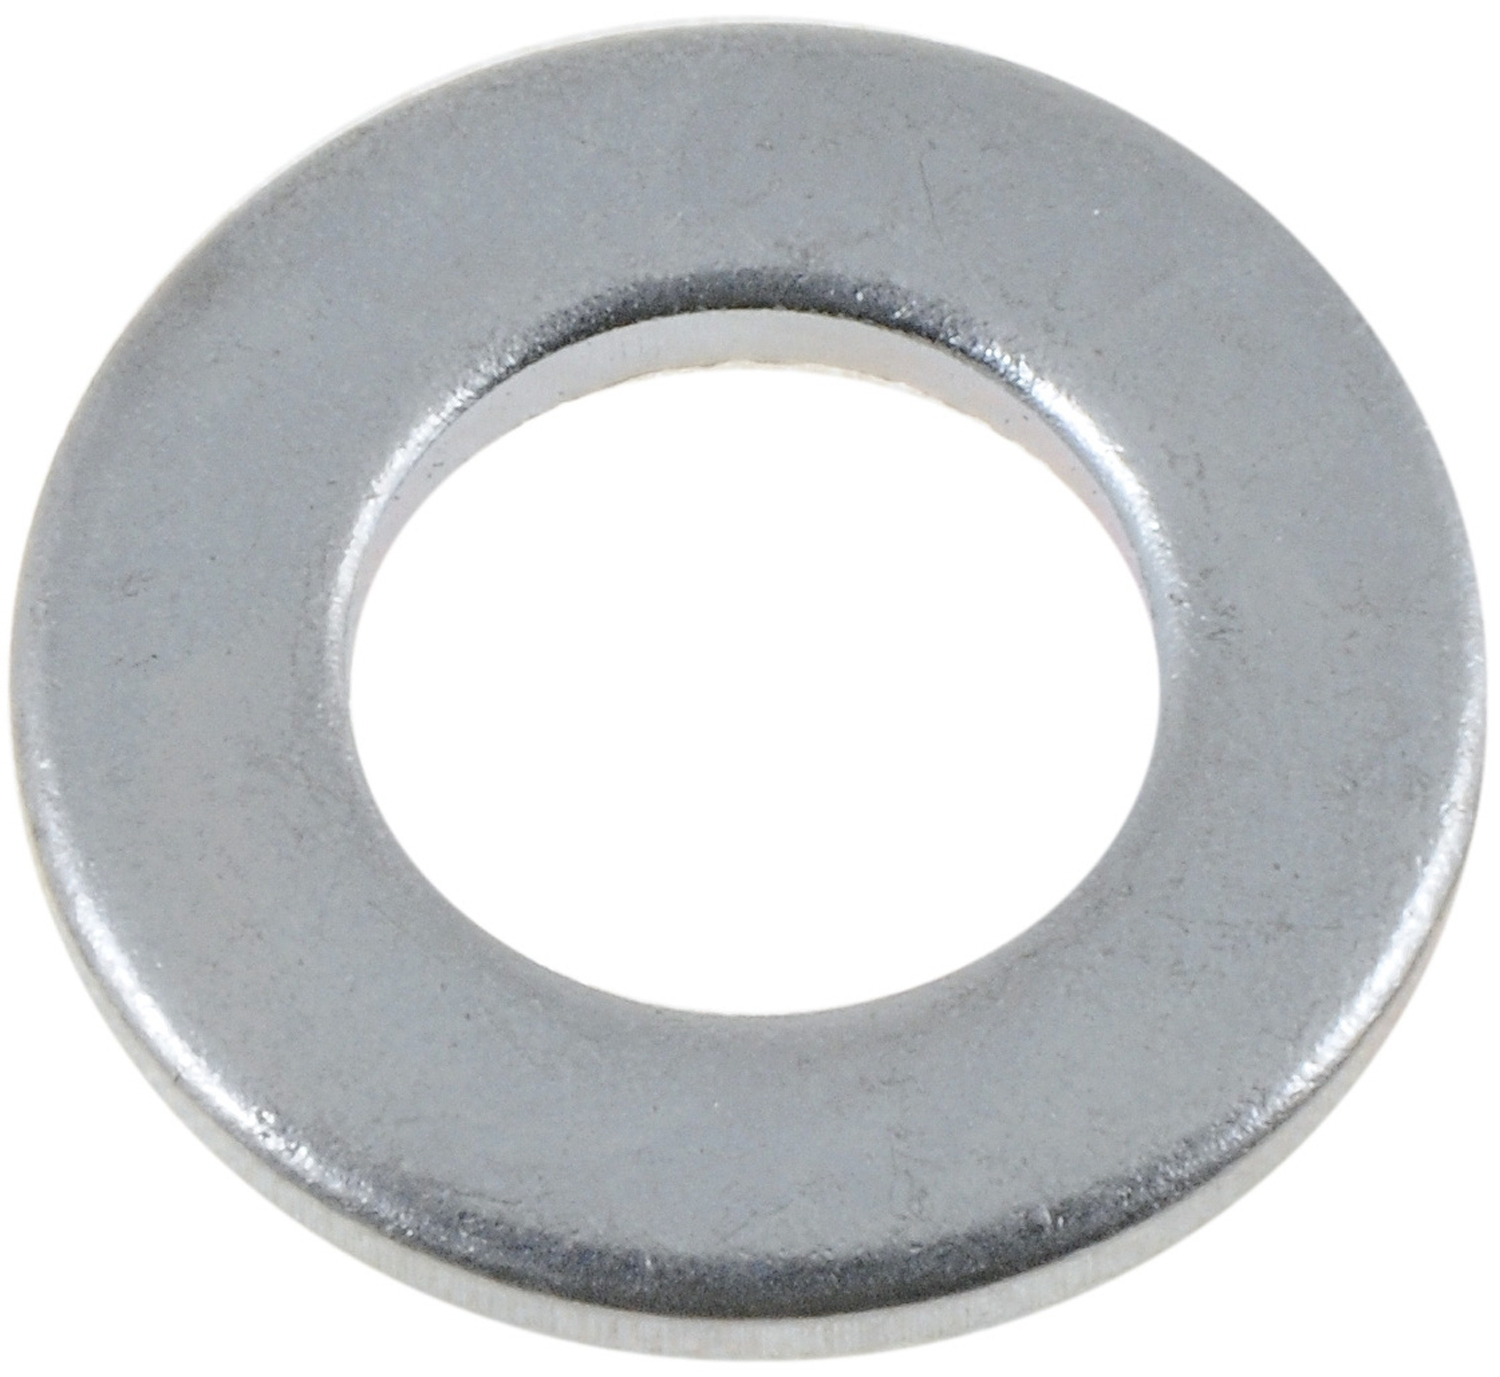 44367 Dorman (OE Solutions) Washer Round Hole Shape